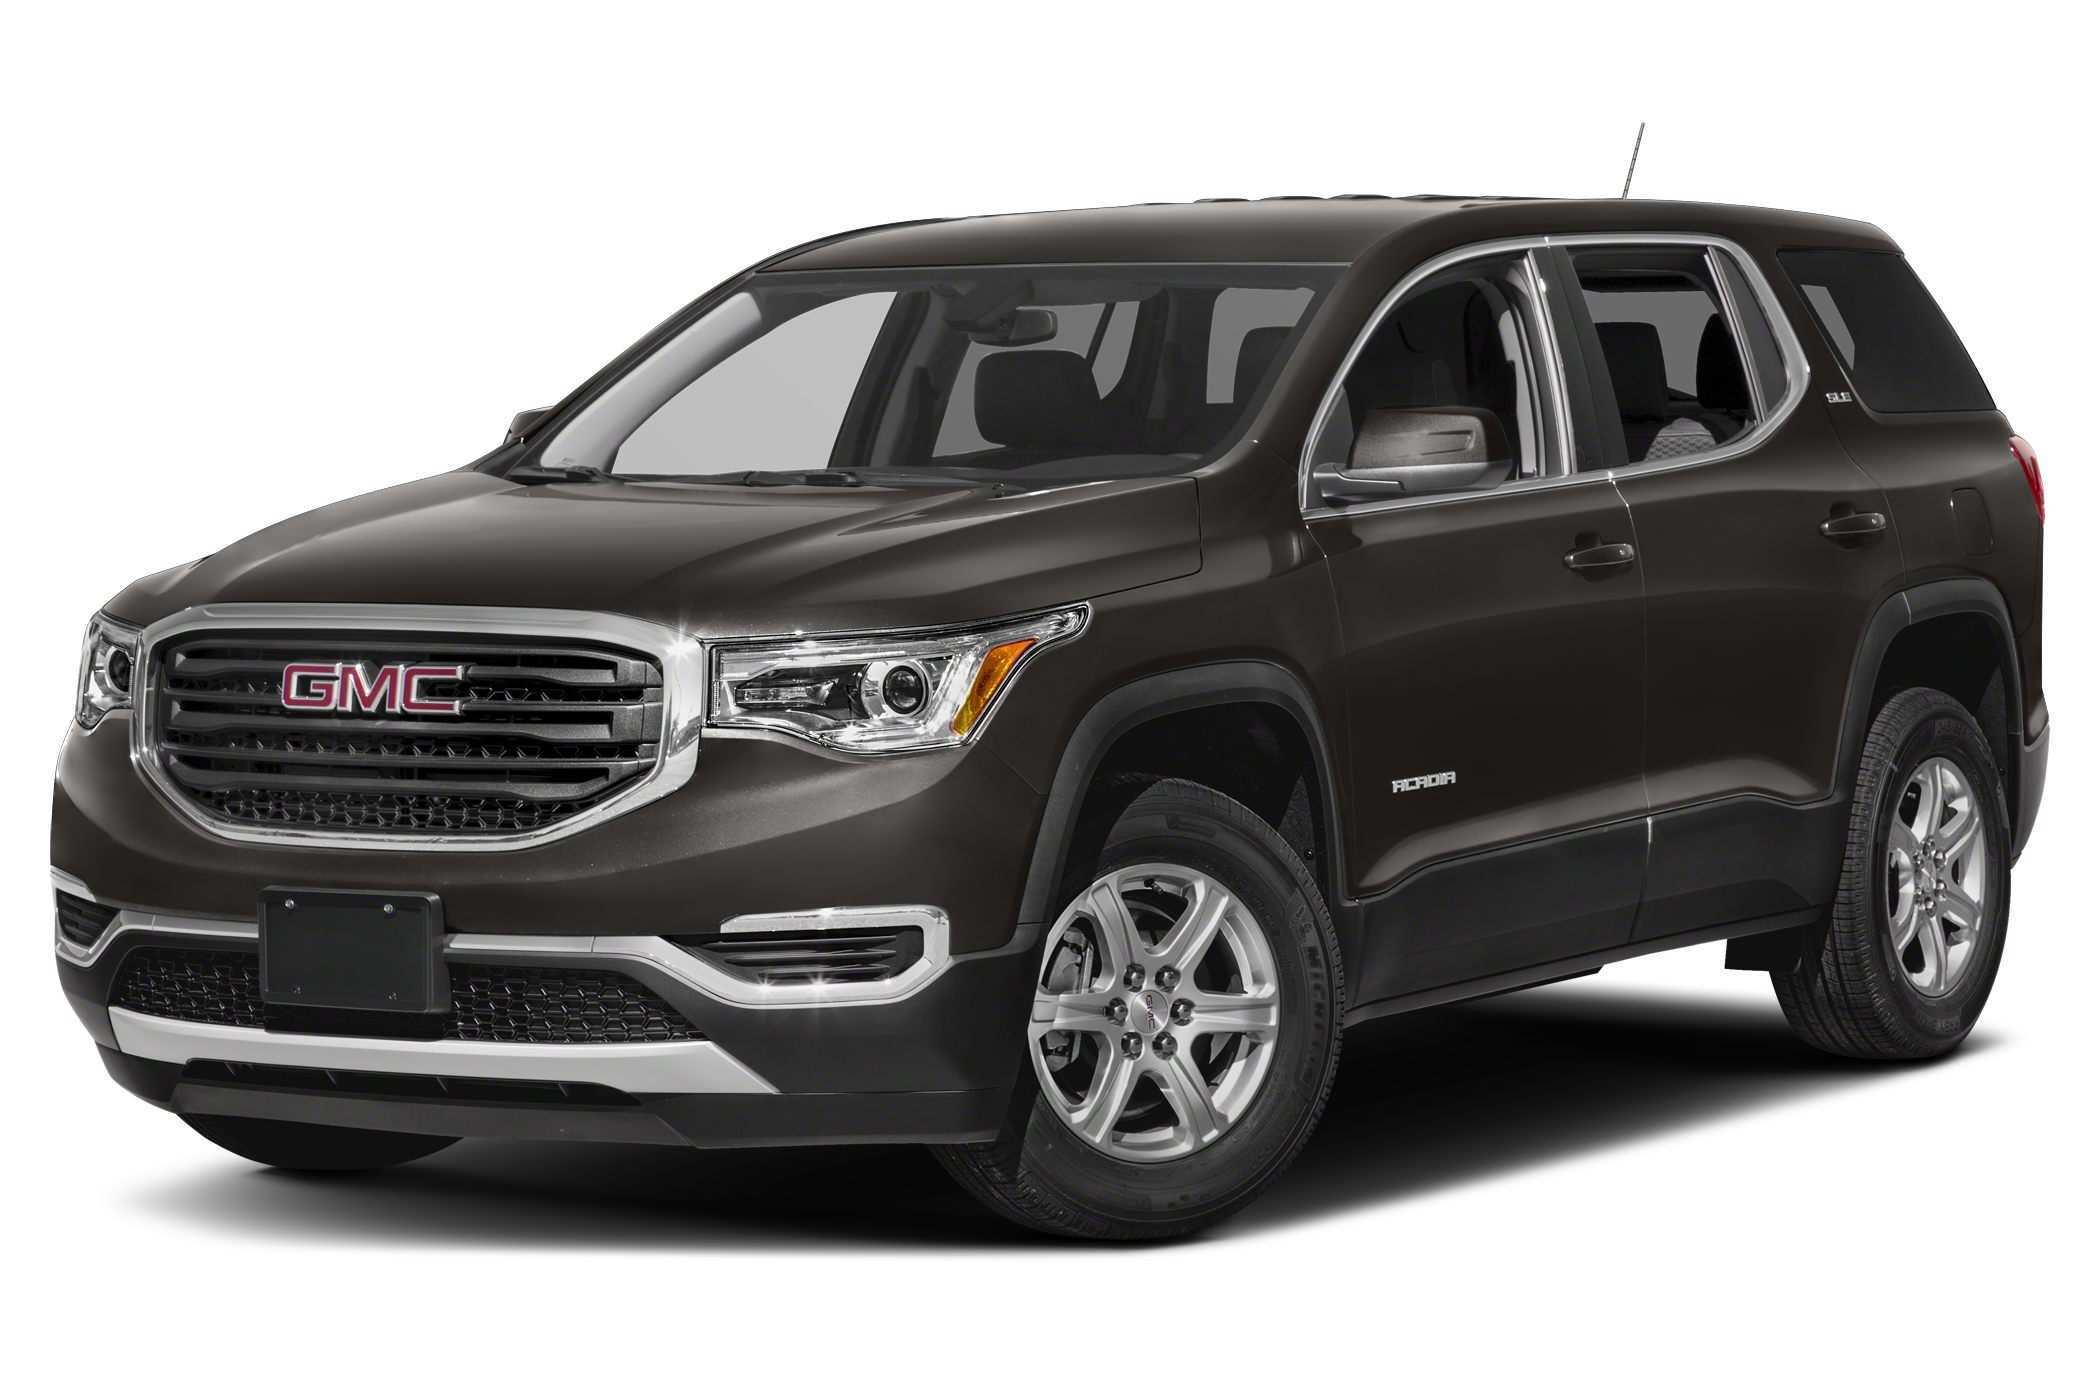 53 All New 2020 Gmc Acadia Length Model for 2020 Gmc Acadia Length